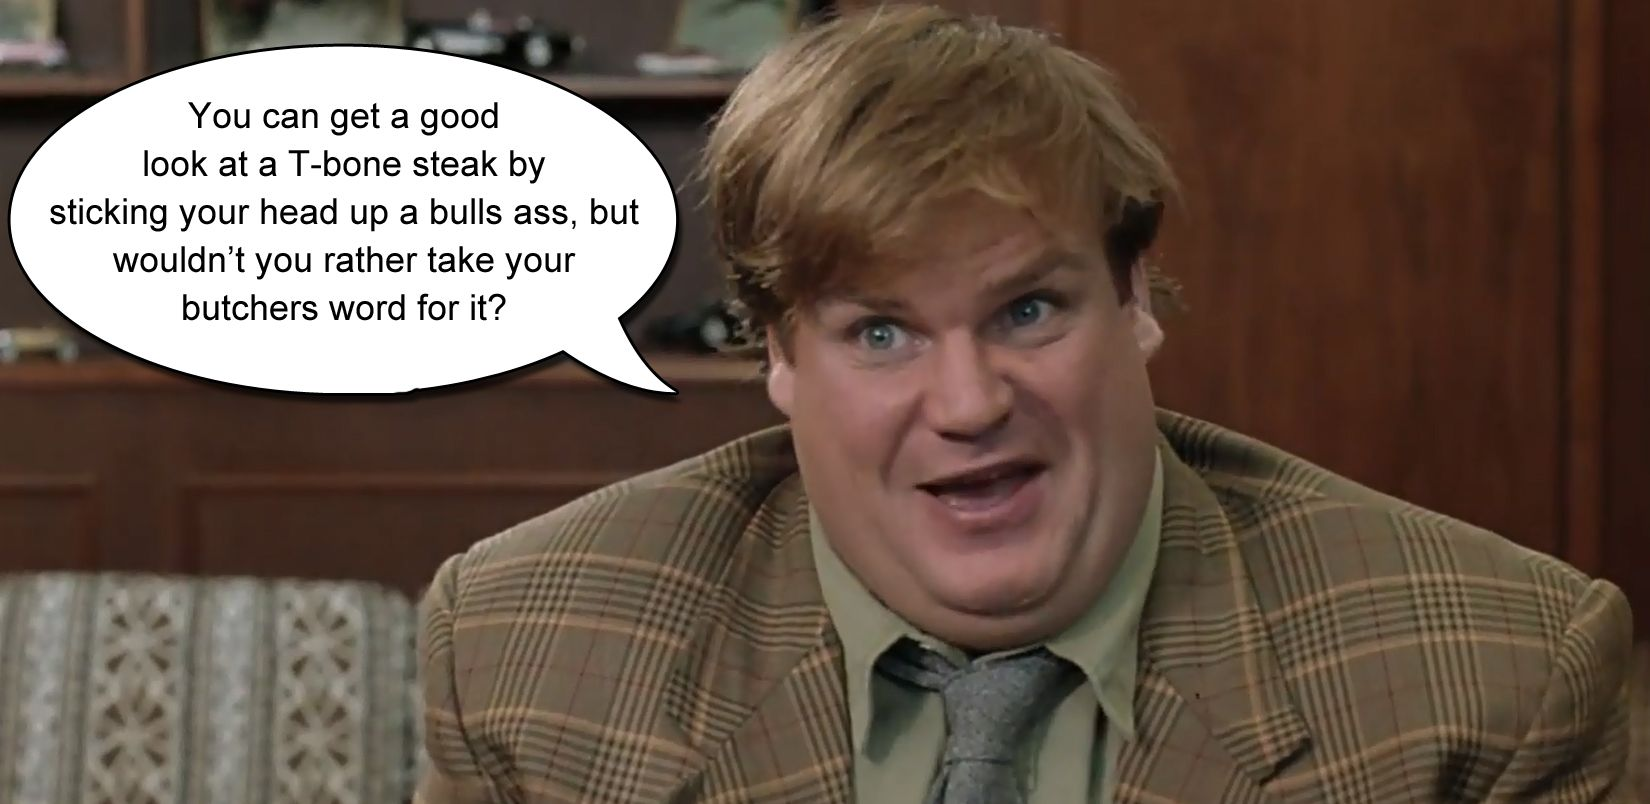 Chris Farley in Tommy Boy sales quote | Favorite movie ...